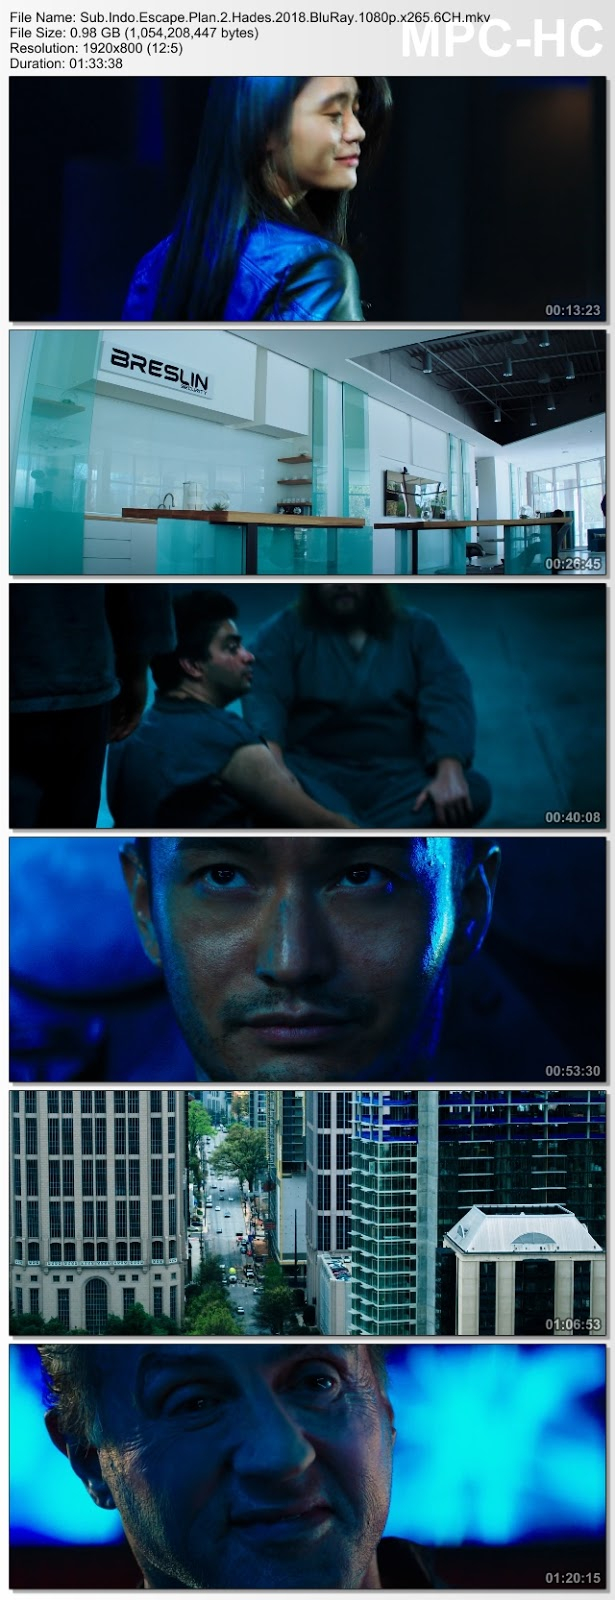 Screenshots Download Film Gratis Escape Plan 2: Hades (2018) BluRay 480p MP4 Subtitle Bahasa Indonesia 3GP